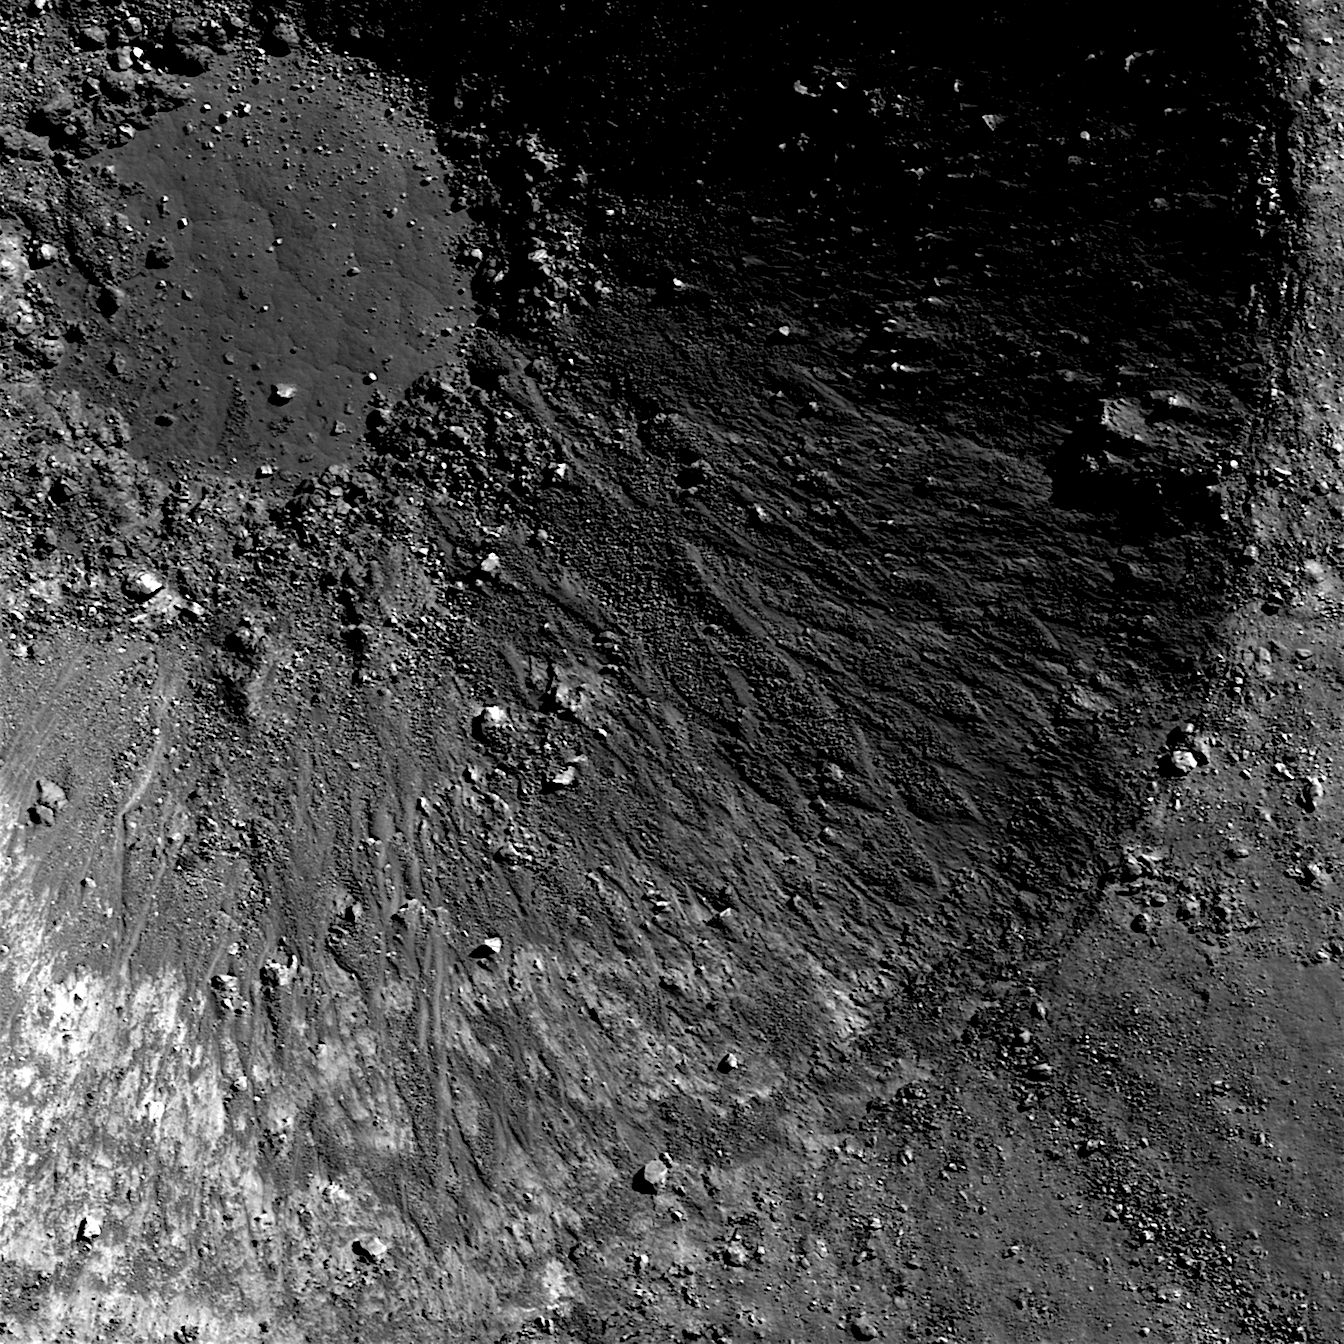 The walls and floor of an unnamed lunar crater. Credit: NASA/Goddard/Arizona State University